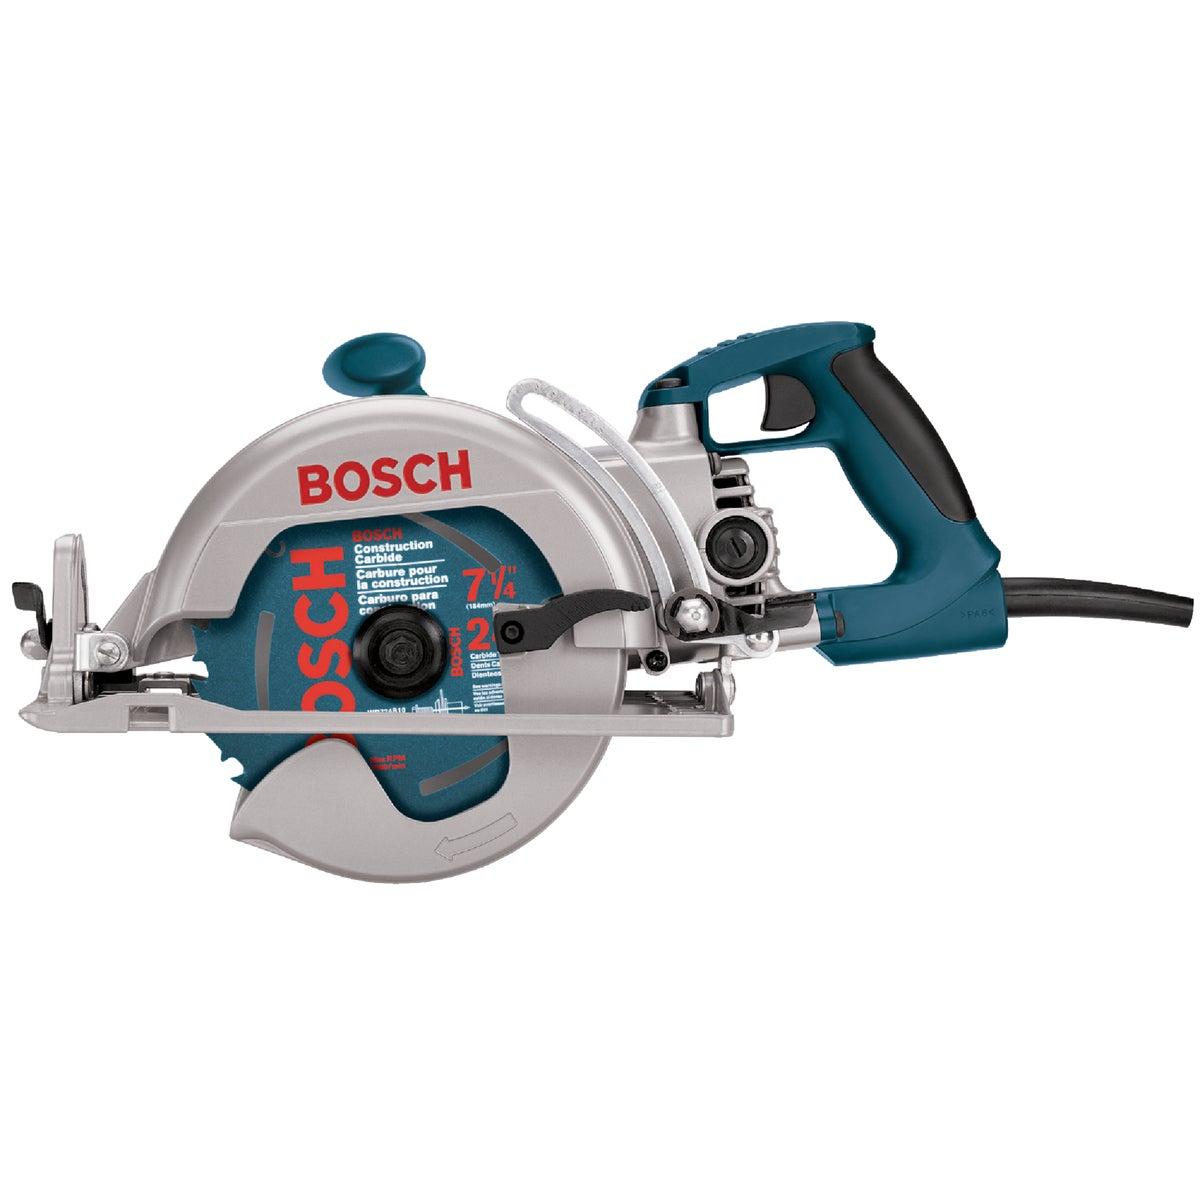 """7-1/4""""14# WORM DRIVE SAW - 1677M by Robt Bosch Tool Corp"""